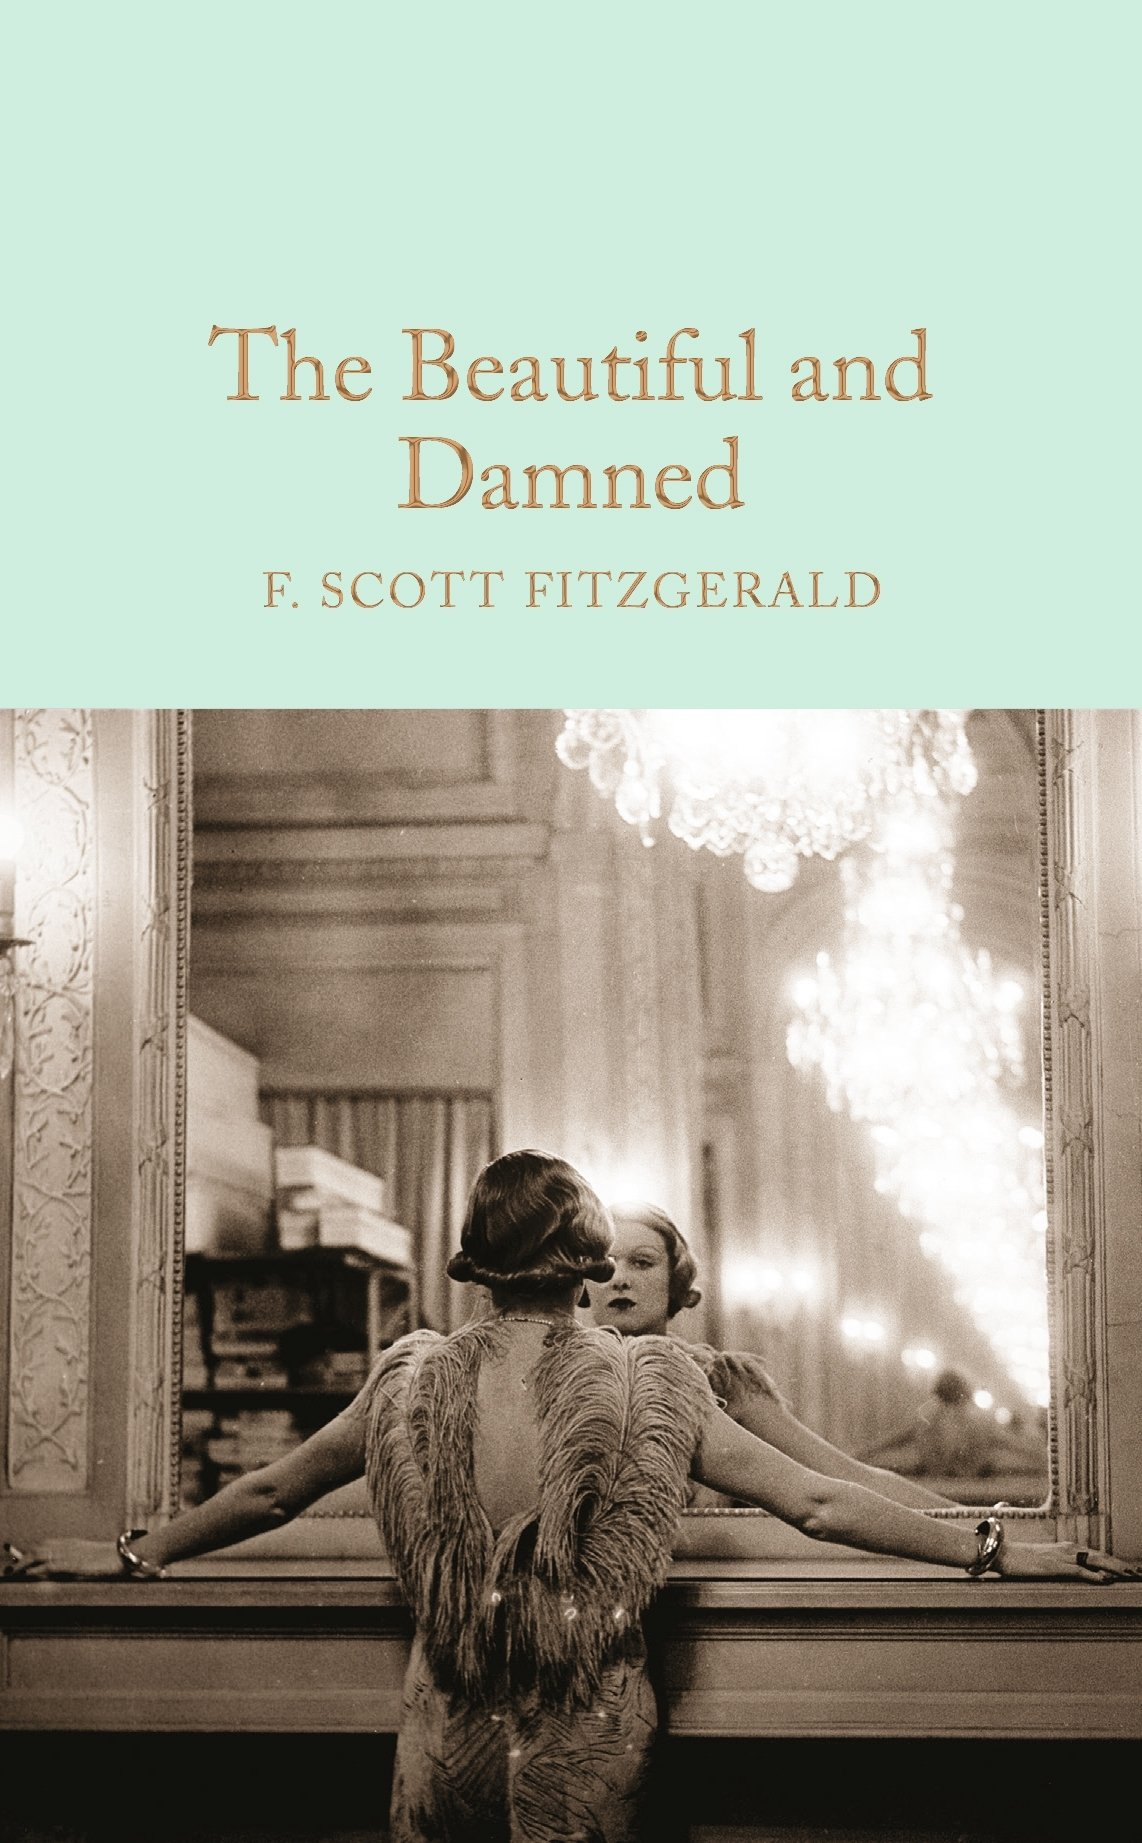 Download The Beautiful and Damned (Macmillan Collector's Library) PDF